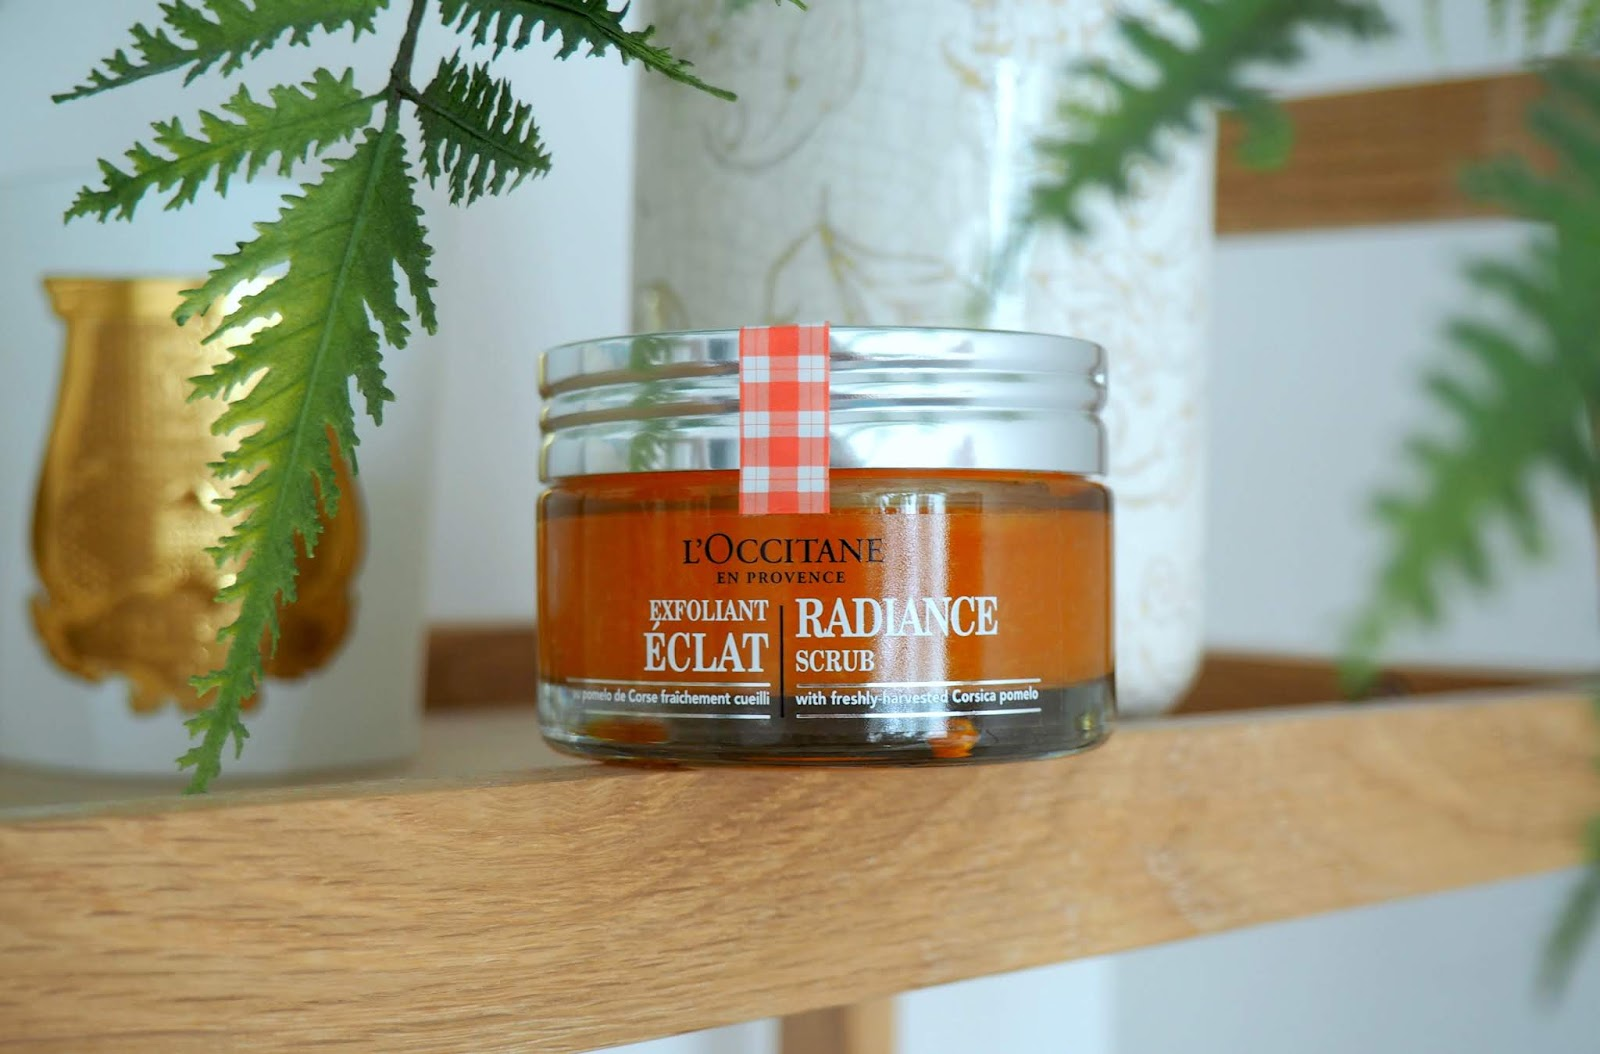 L'Occitane-Radiance-Scrub-review